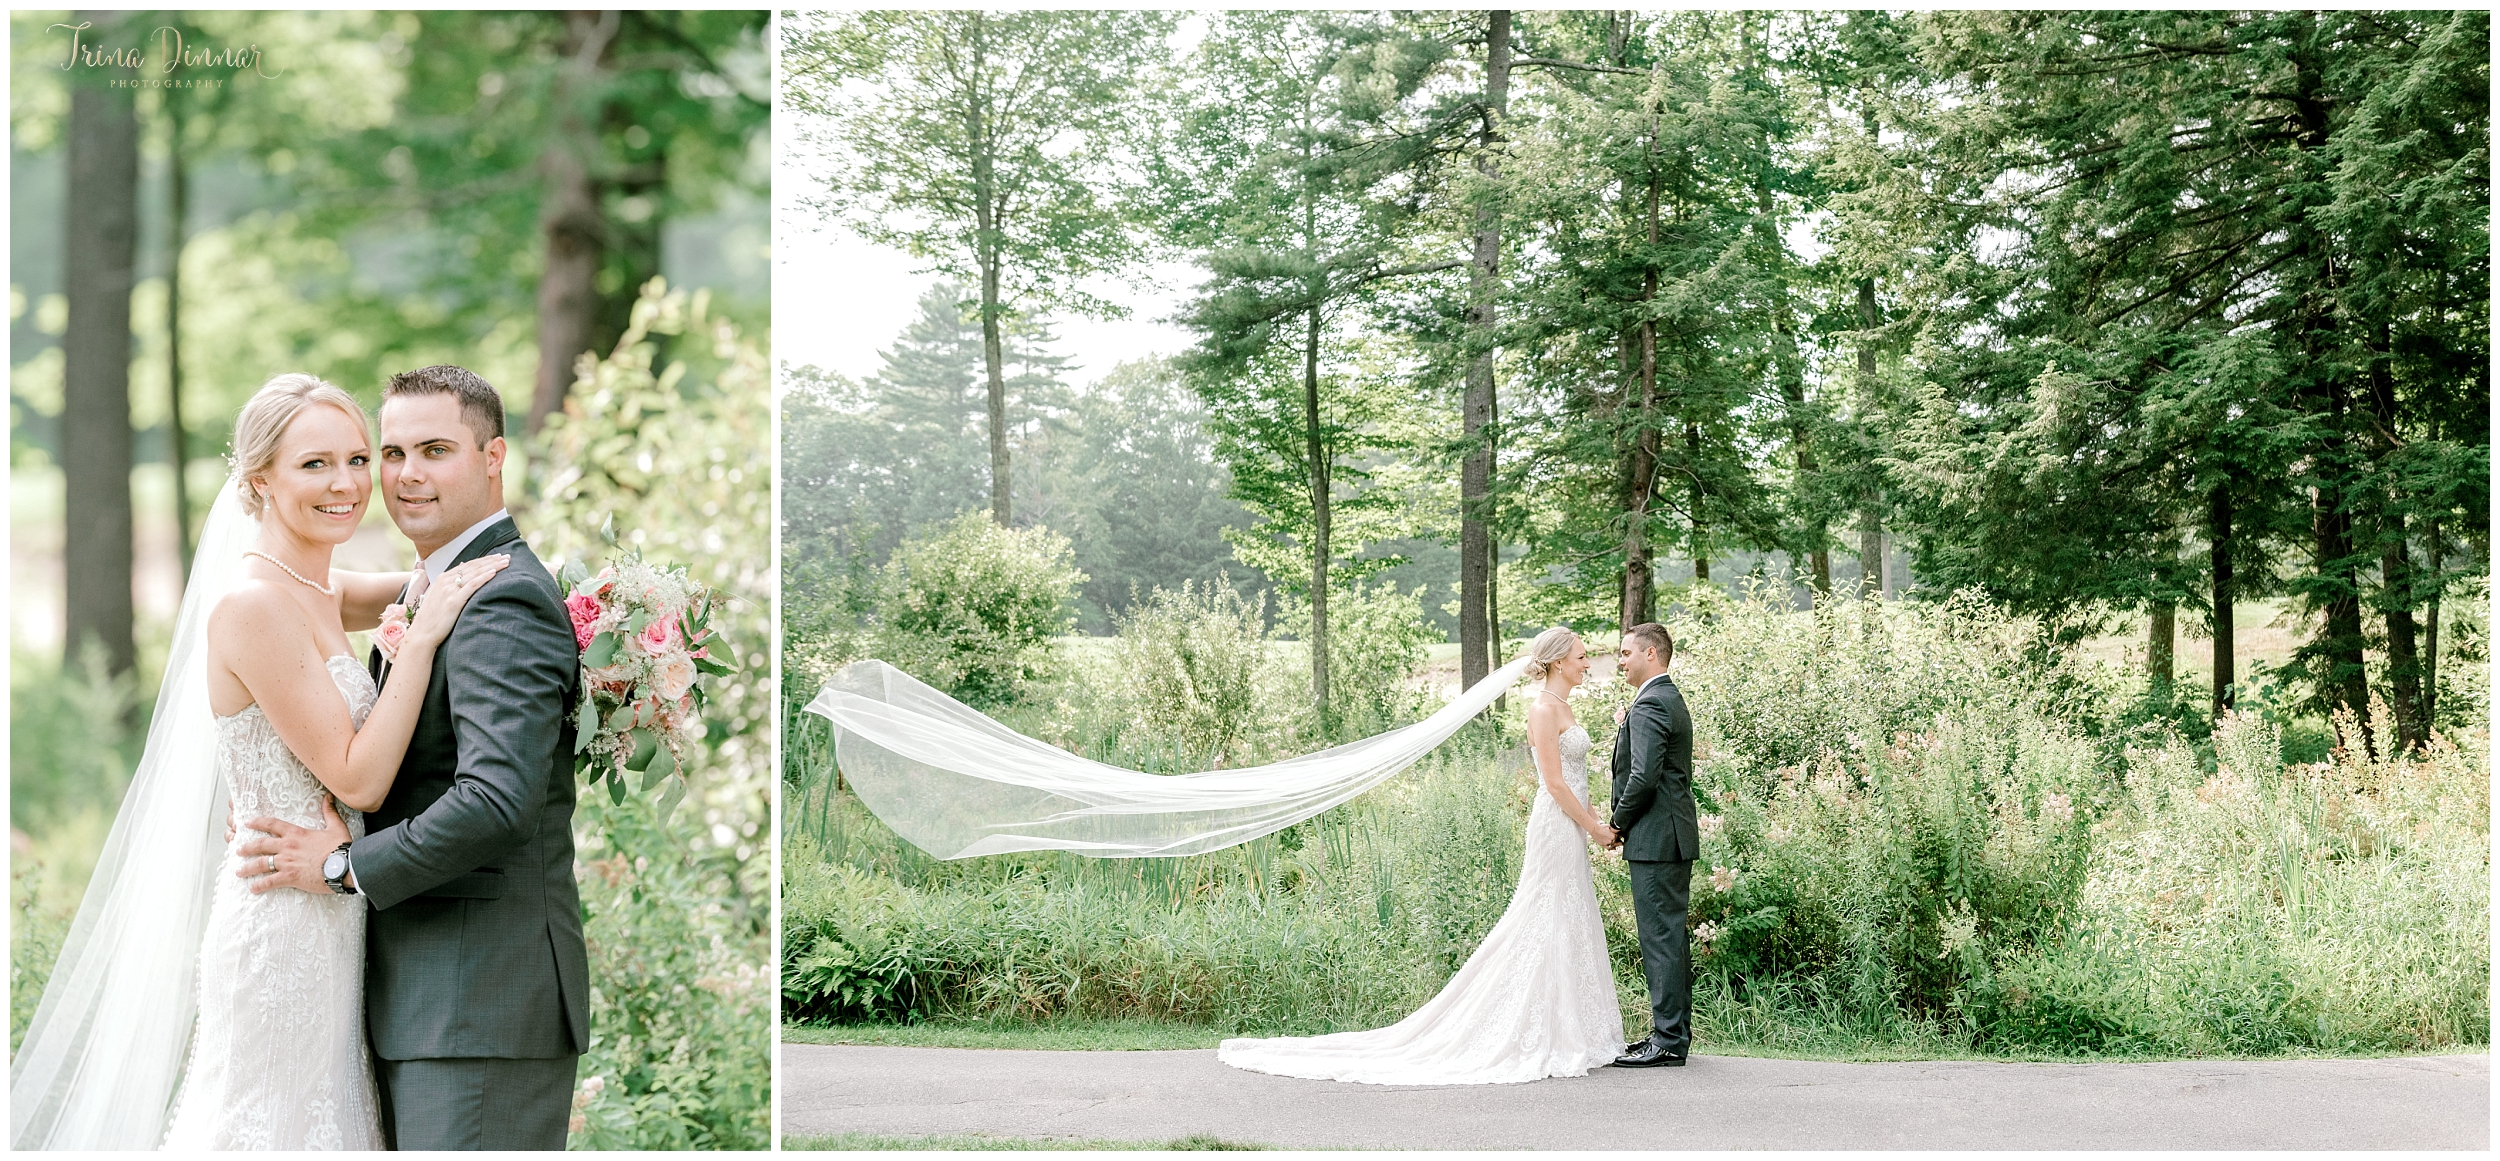 Trina Dinnar is a Falmouth Country Club Wedding Photographer